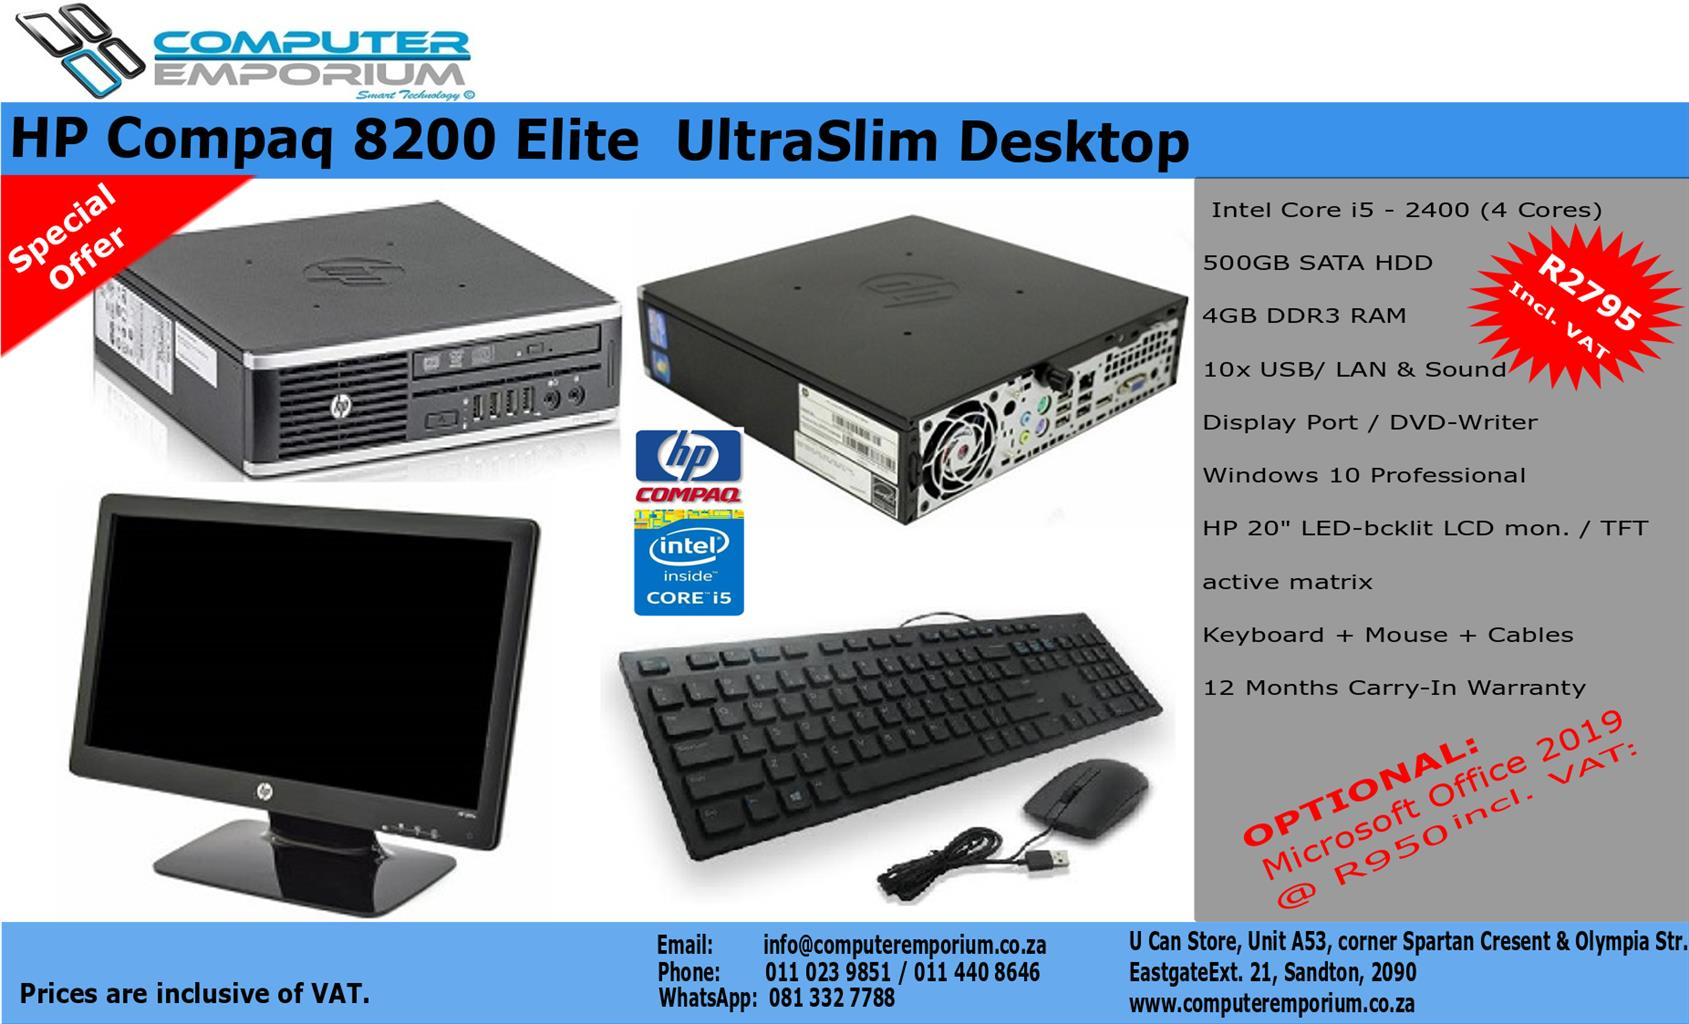 HP Compaq 8200 Elite UltraSlim Desktop